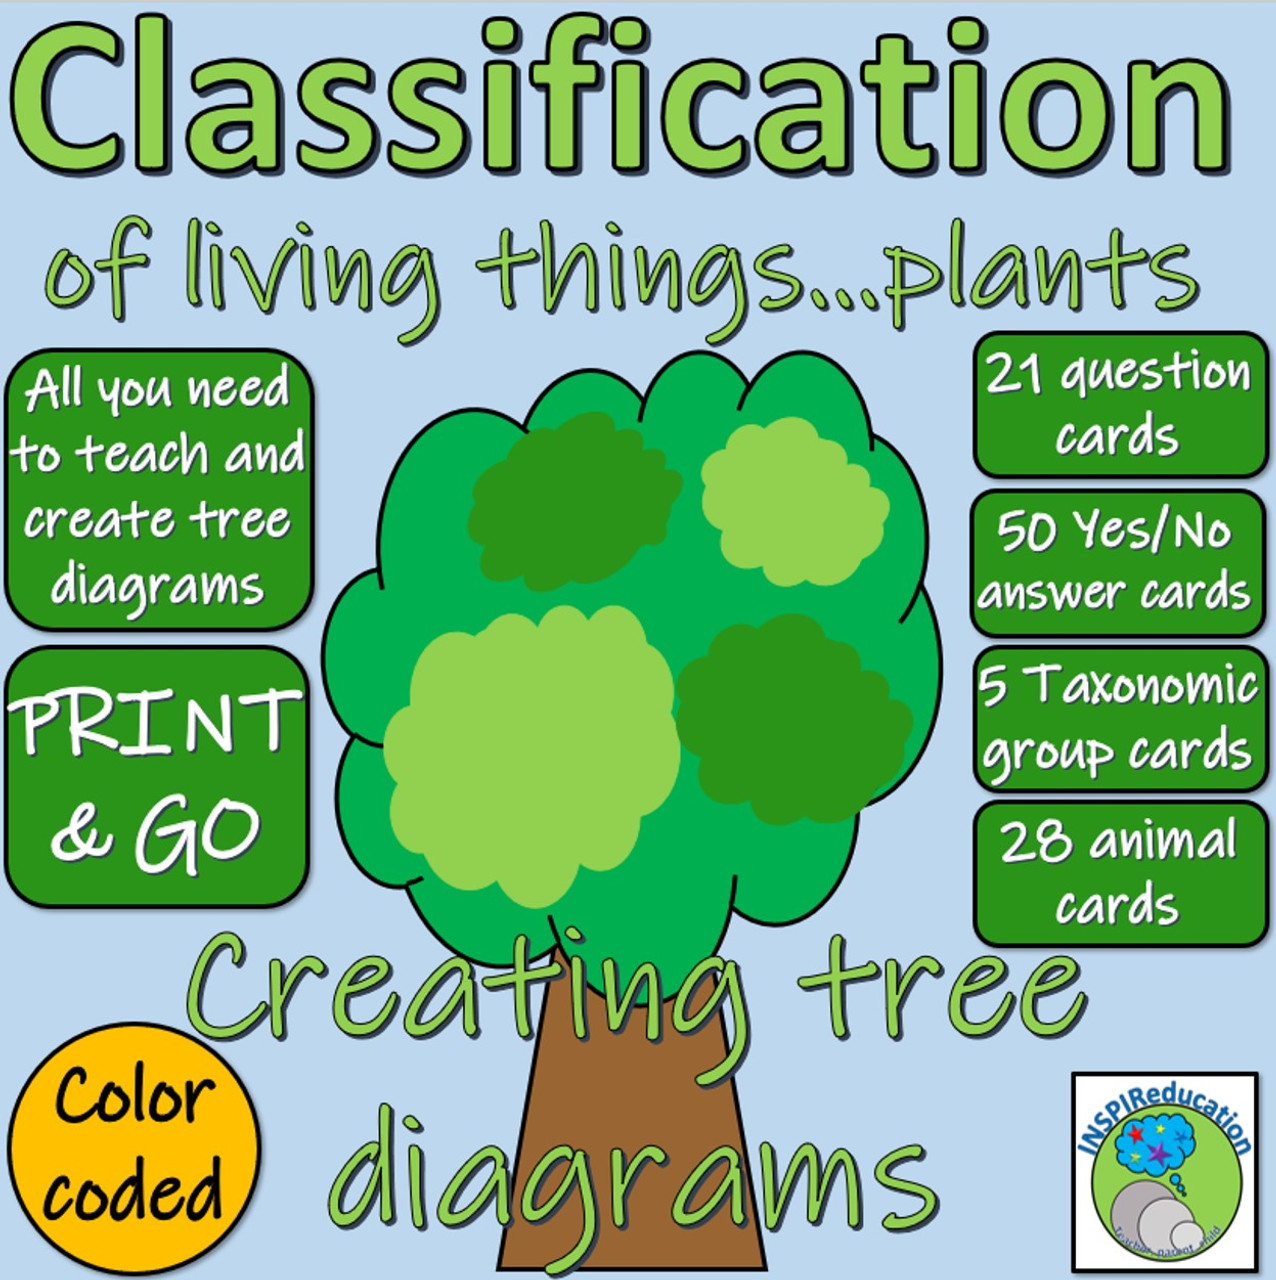 hight resolution of Classification of Green Plants - Decision Trees (Yes/No) Questions - Branch  diagrams - Amped Up Learning